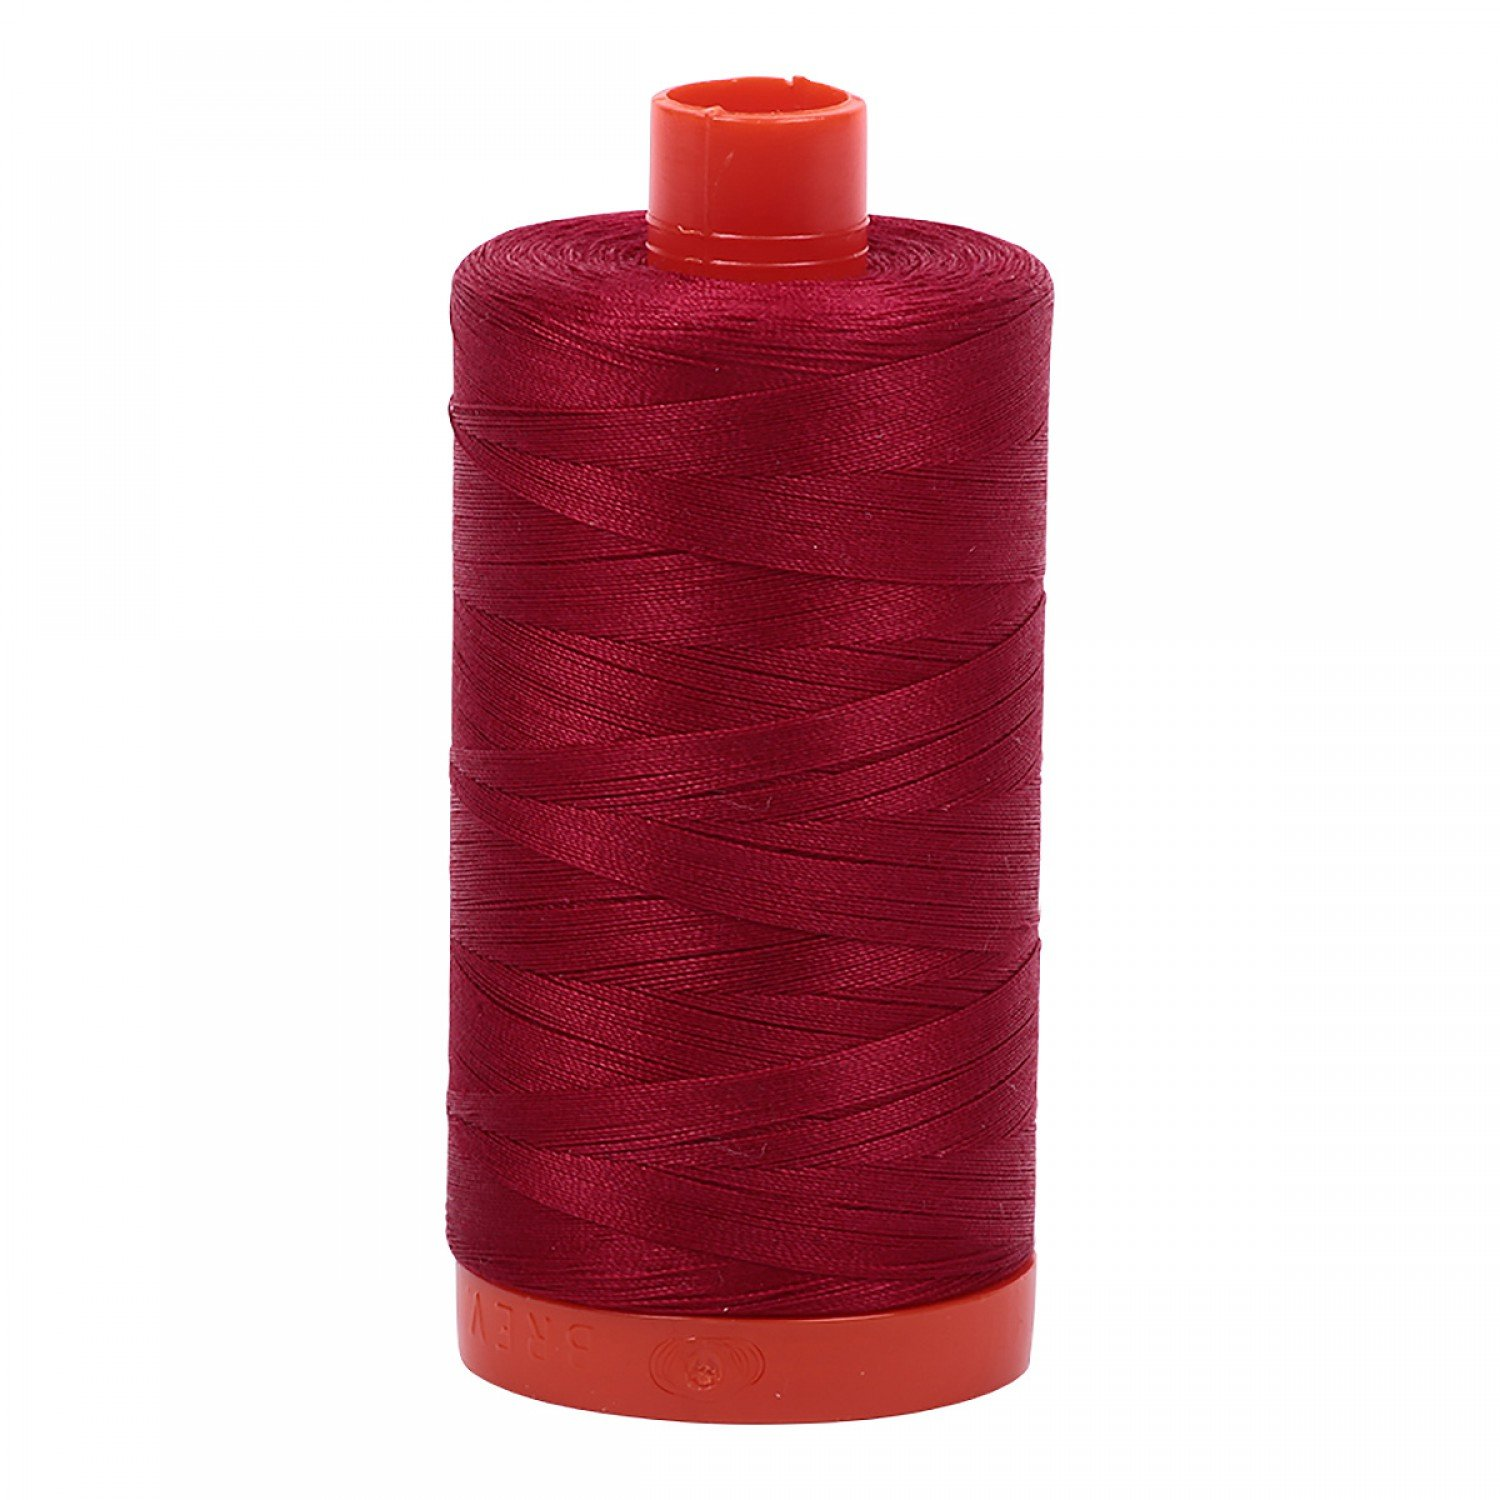 Aurifil 2260 - Mako Cotton Thread Solid 50wt 1422yds Red Wine